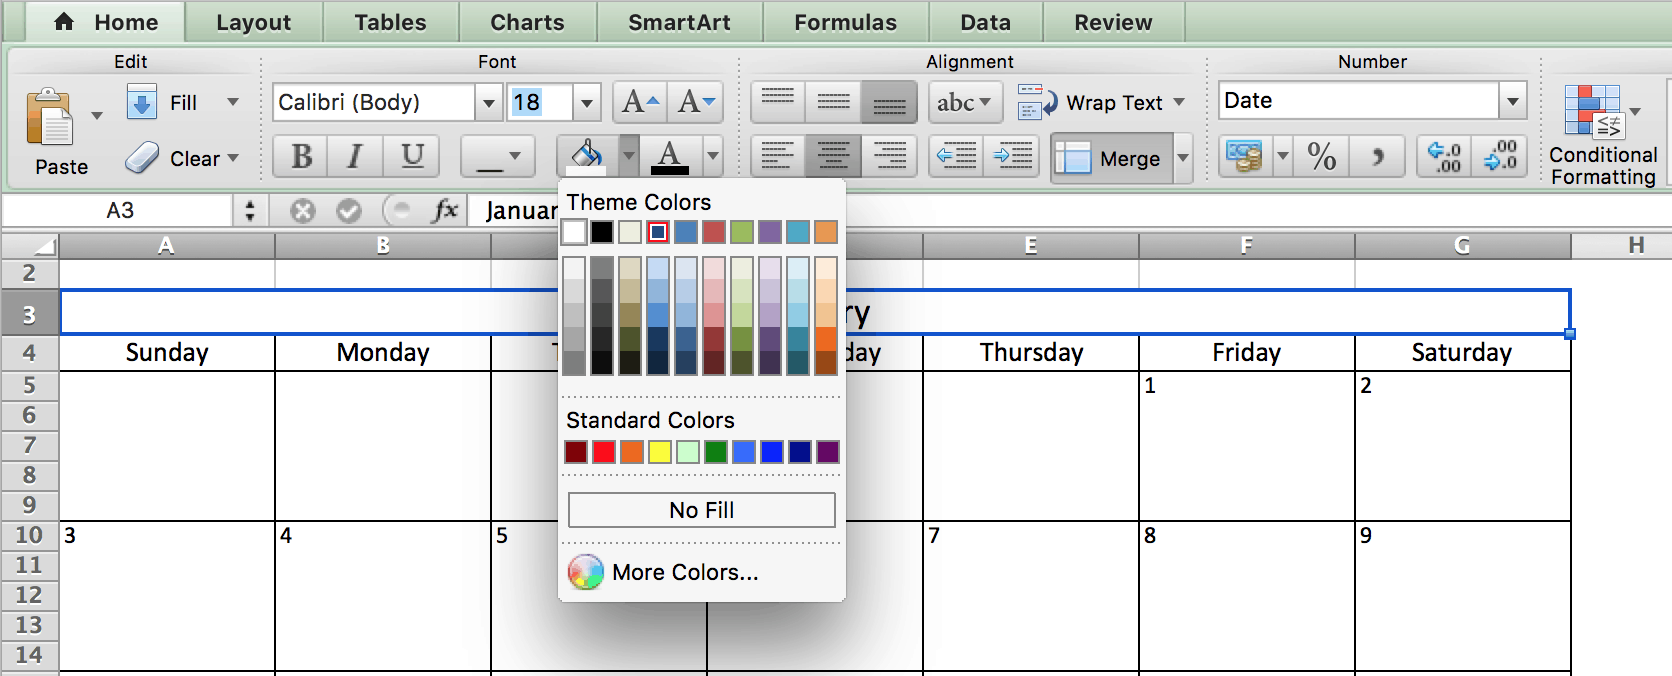 Ediblewildsus  Pretty Make A  Calendar In Excel Includes Free Template With Fair Choosing Colors  Calendar In Excel With Awesome How To Add Button In Excel Also Excel Enable Editing In Addition Excel Extensions And Calculating Confidence Interval In Excel As Well As Greater Than Or Equal To Excel Additionally Data Validation Excel  From Smartsheetcom With Ediblewildsus  Fair Make A  Calendar In Excel Includes Free Template With Awesome Choosing Colors  Calendar In Excel And Pretty How To Add Button In Excel Also Excel Enable Editing In Addition Excel Extensions From Smartsheetcom